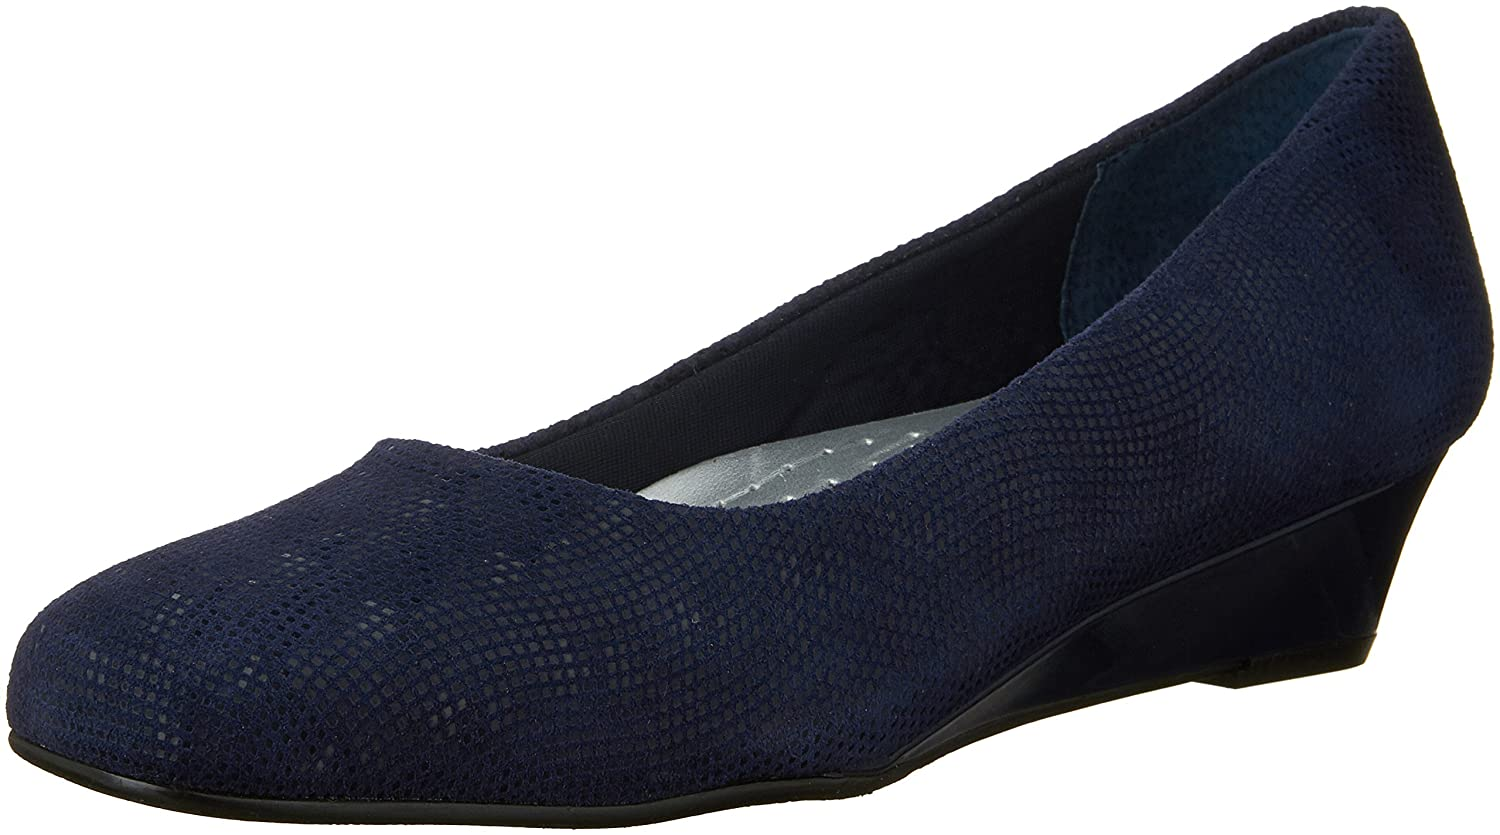 Trotters Women's Lauren Dress Wedge B00LMH0KL4 11 W US|Navy Suede